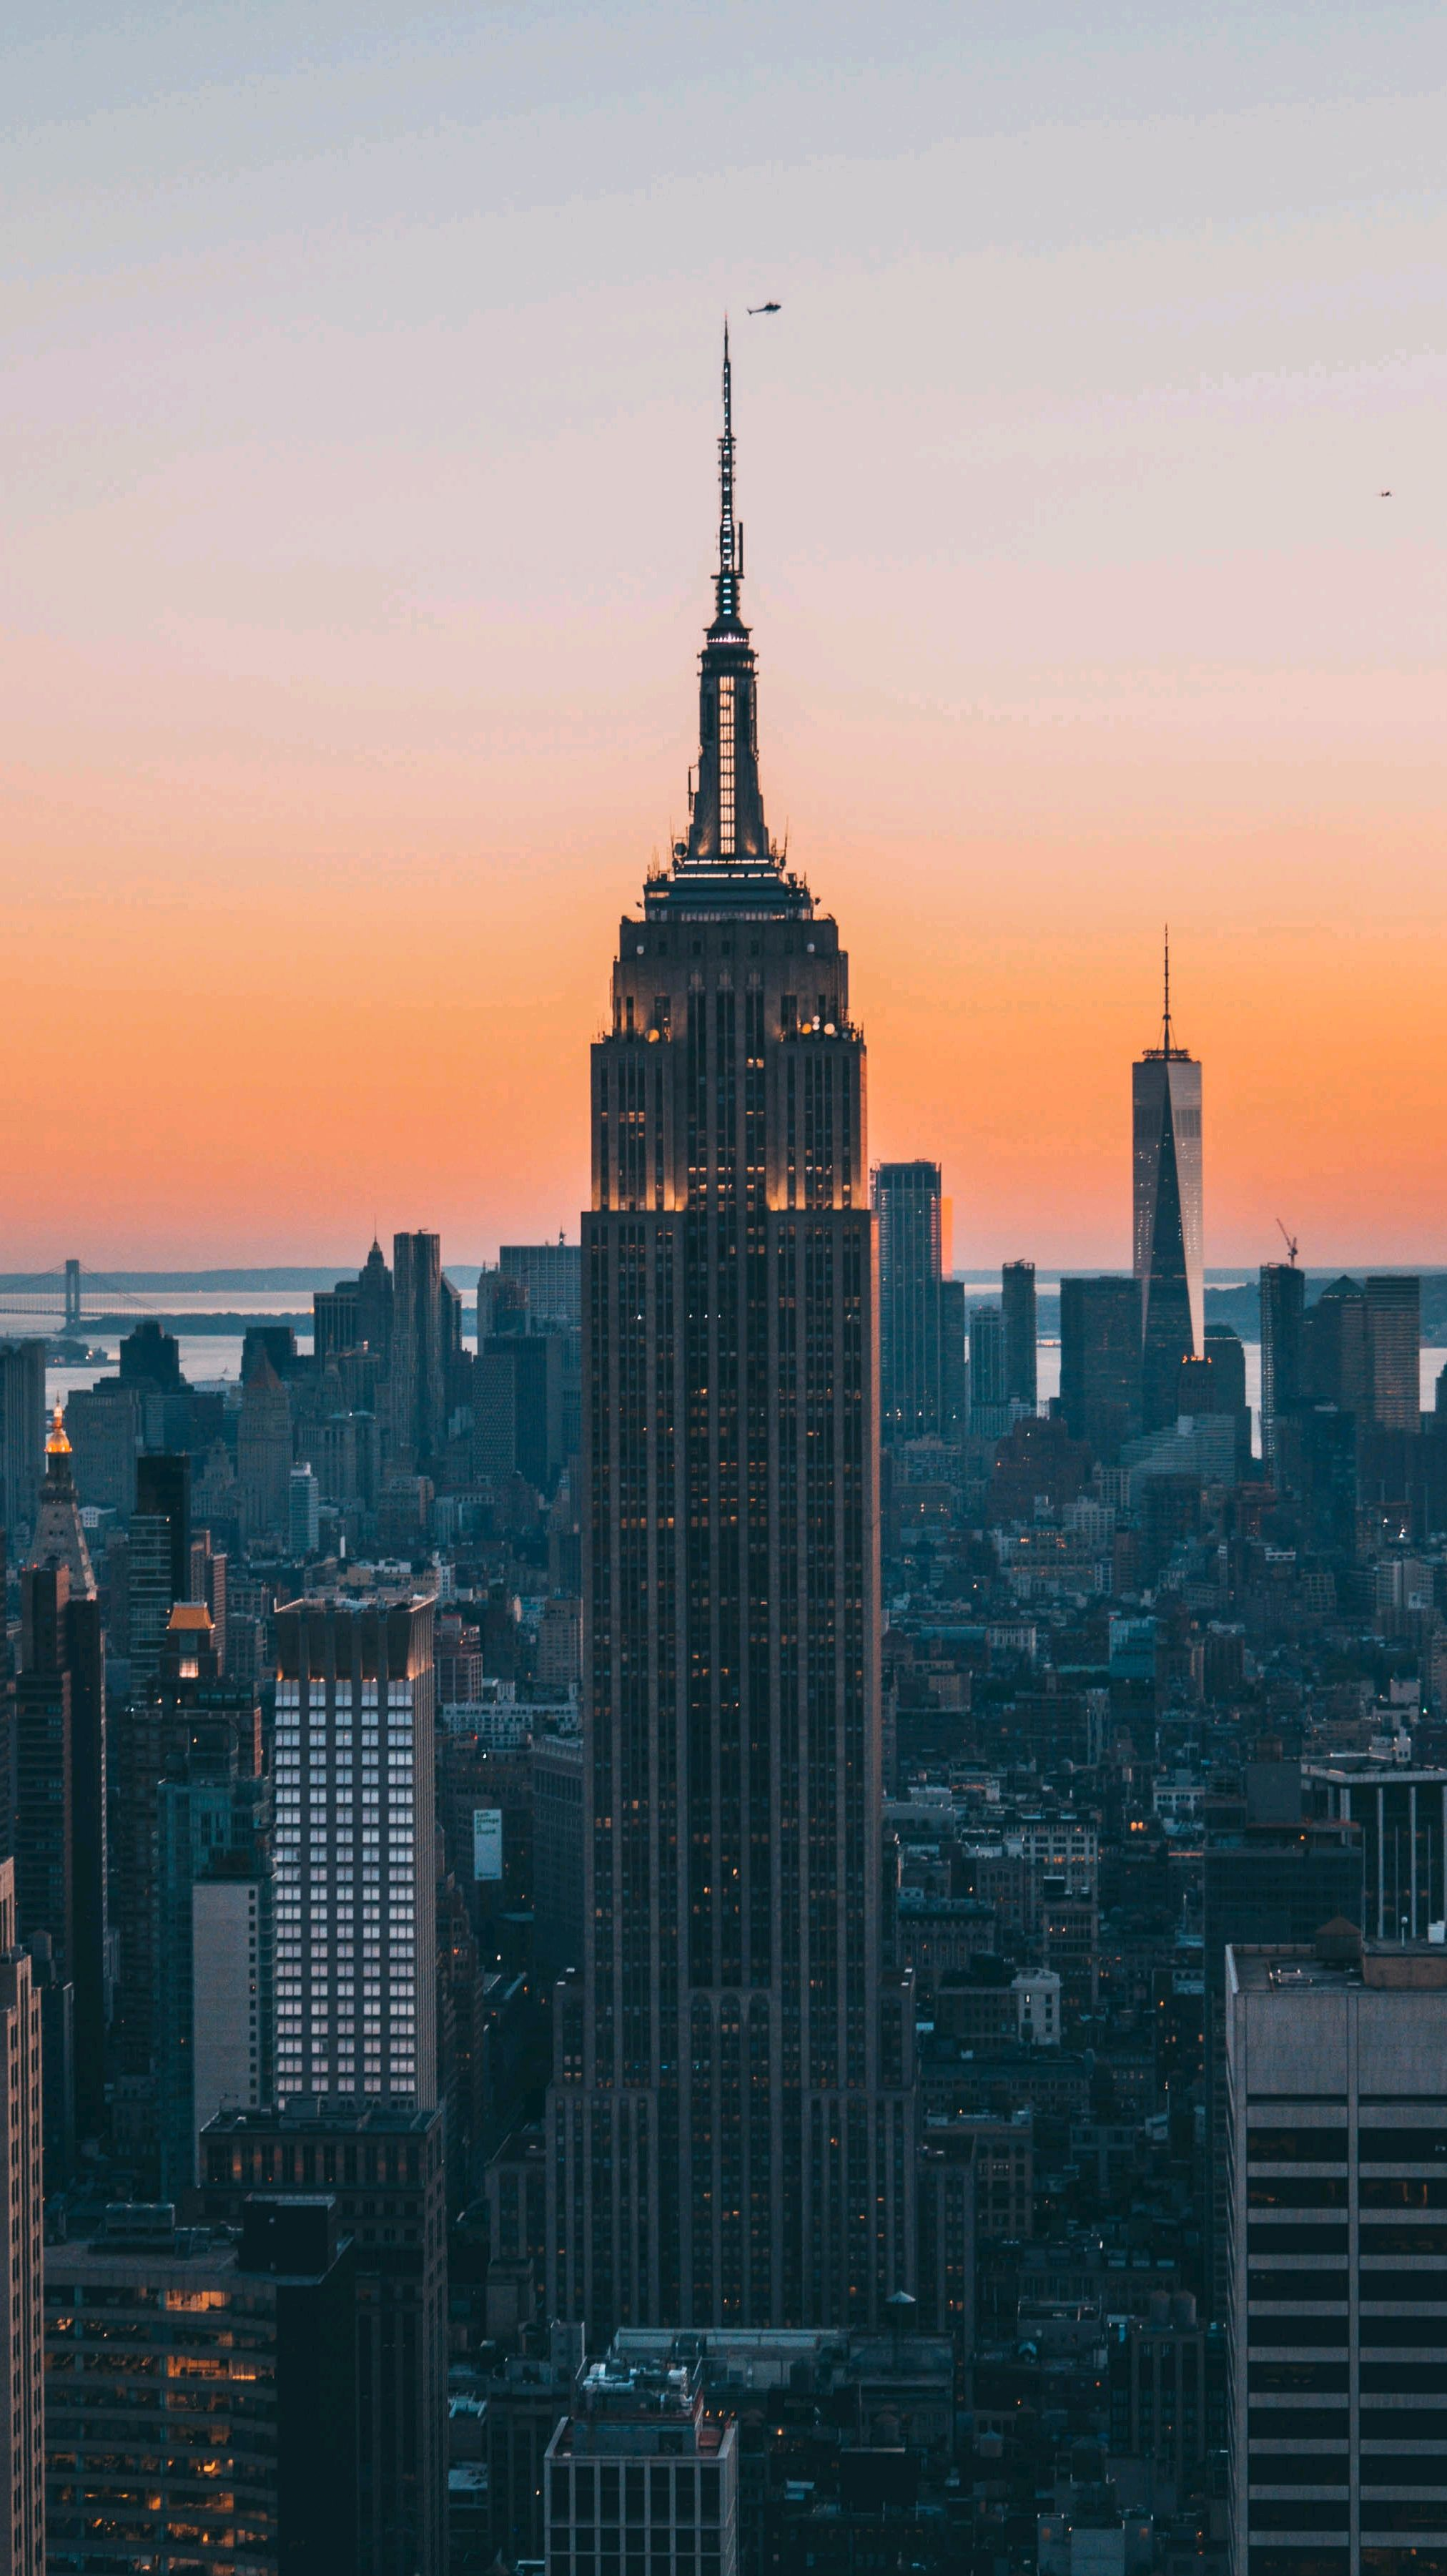 Enemy Wallpaper Quotes Empire State Building New York Evening Iphone Wallpaper